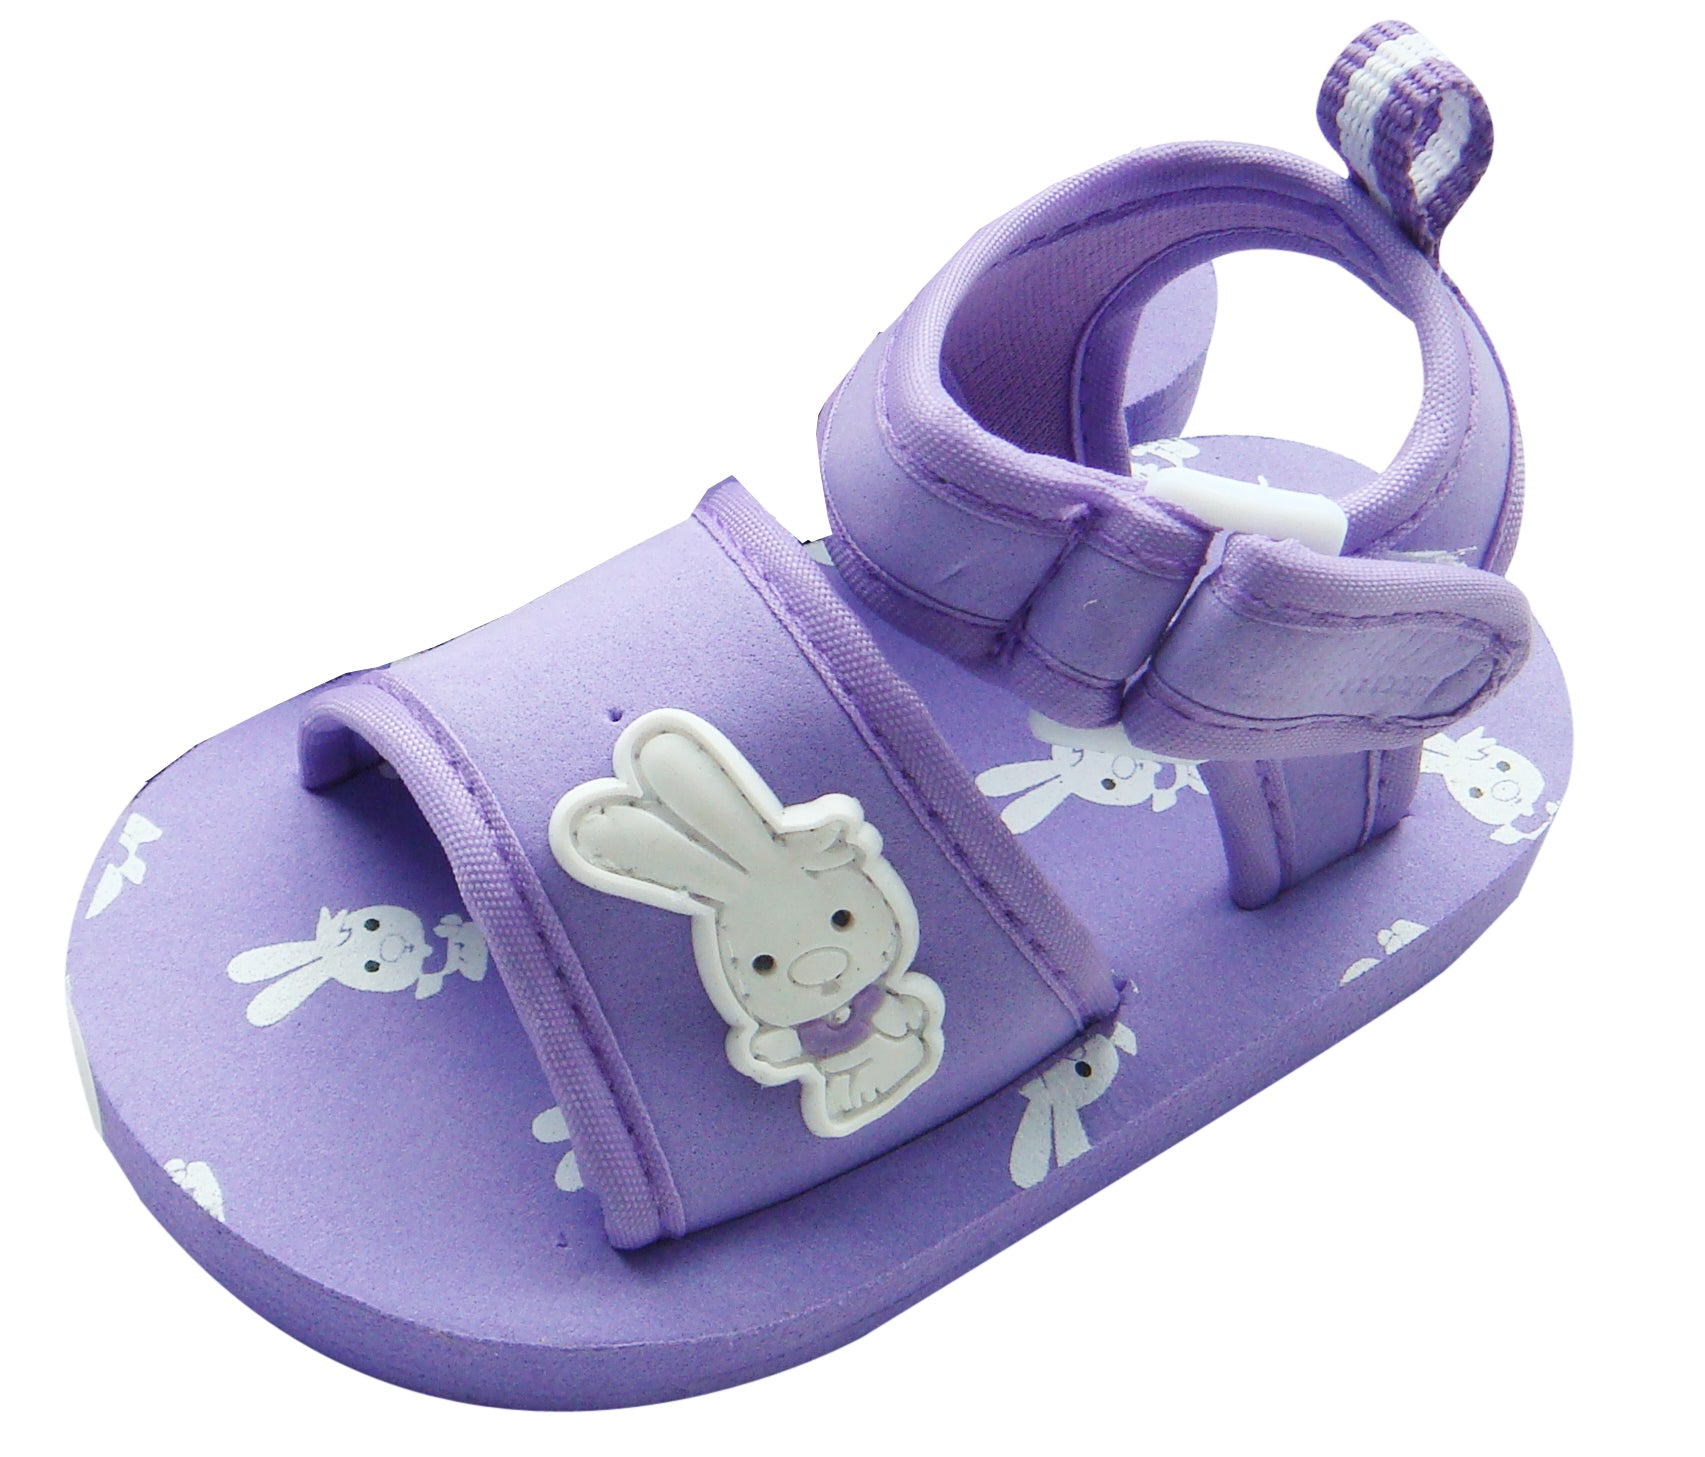 MABINI Baby Girls Bunny Rabbit Design Summer Eva Sandals